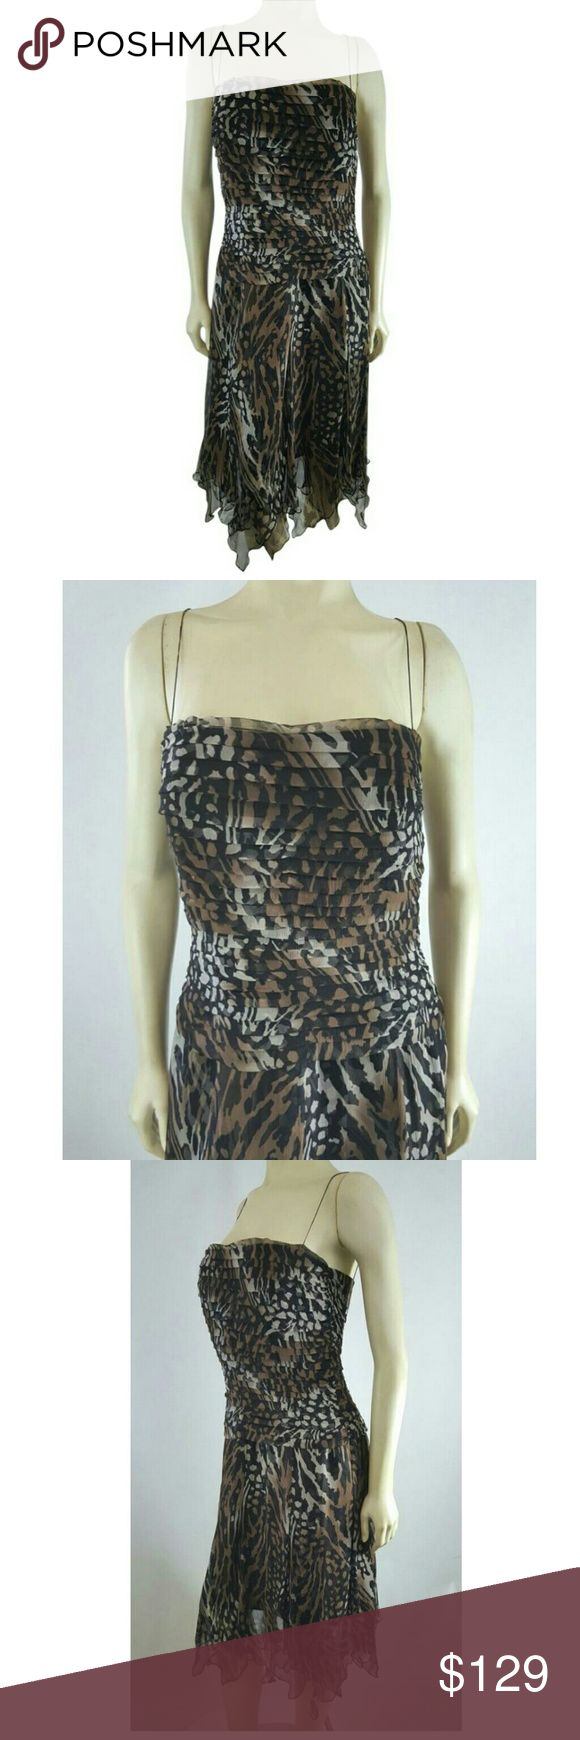 """Tadashi Shoji Silk Pleated Animal Print FormaDress Lined  pit to pit 17"""", around waist 29"""", around hips 39"""", length (armpit to bottom hem) 33-36"""" (variance in asymmetrical hem)   Gorgeous pure crepe silk brown, black and white animal print cocktail evening dress. Spaghetti straps (not adjustable), back center zip-up and hook closure, pleated bodice, cascading asymmetrical ruffled hemline. Beautiful look for that special occasion.  Excellent preowned. Tadashi Shoji Dresses Midi"""